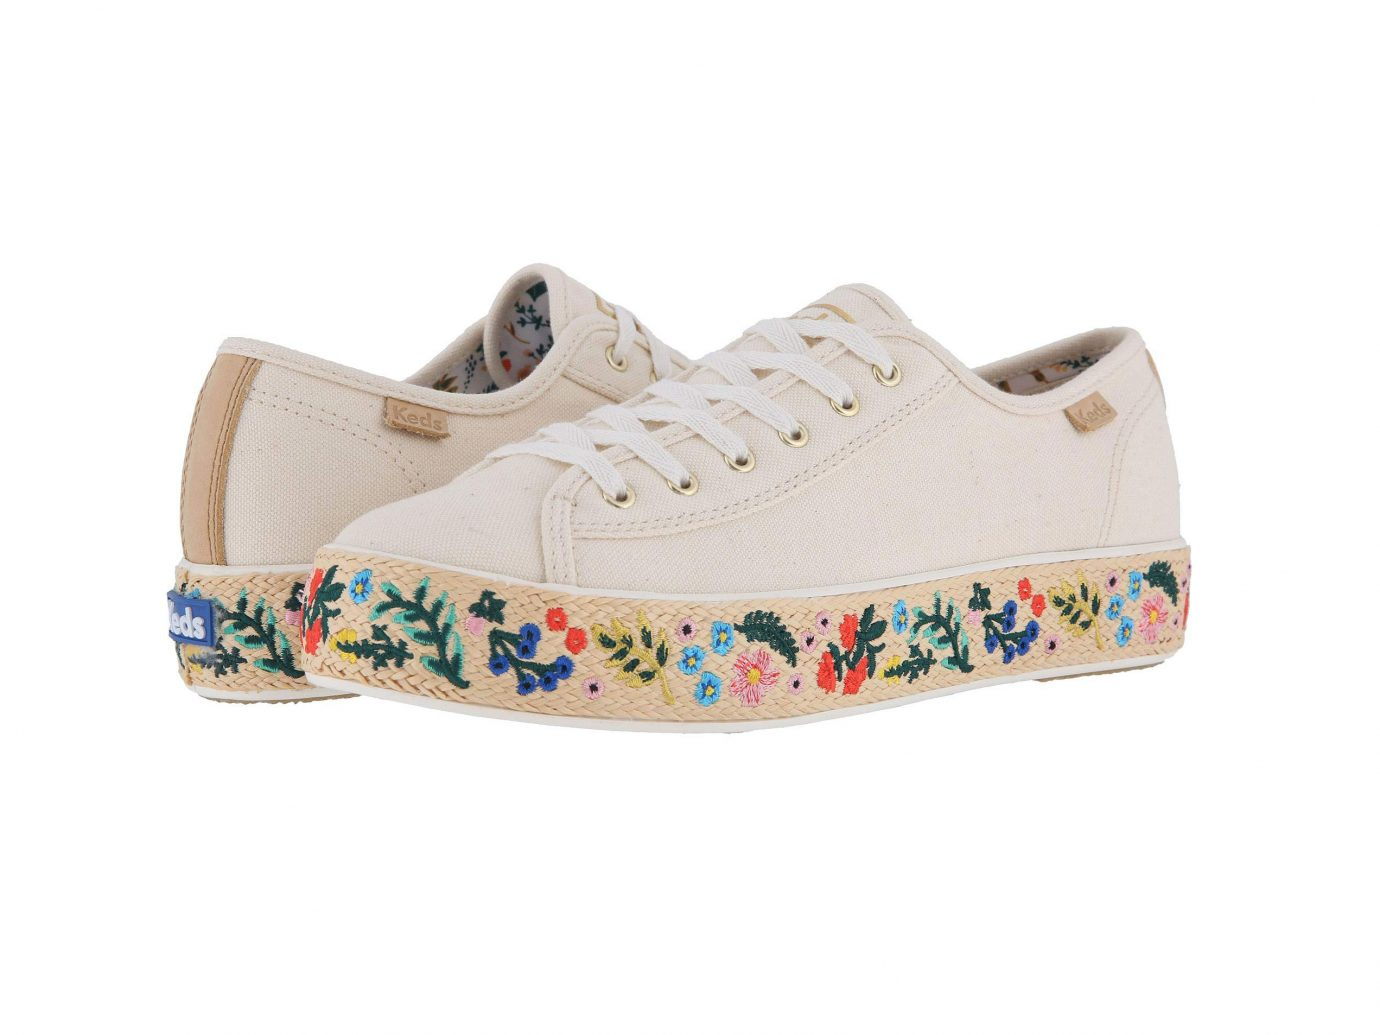 Keds x Rifle Paper Co. Triple Kick Embroidered Jute Sneakers